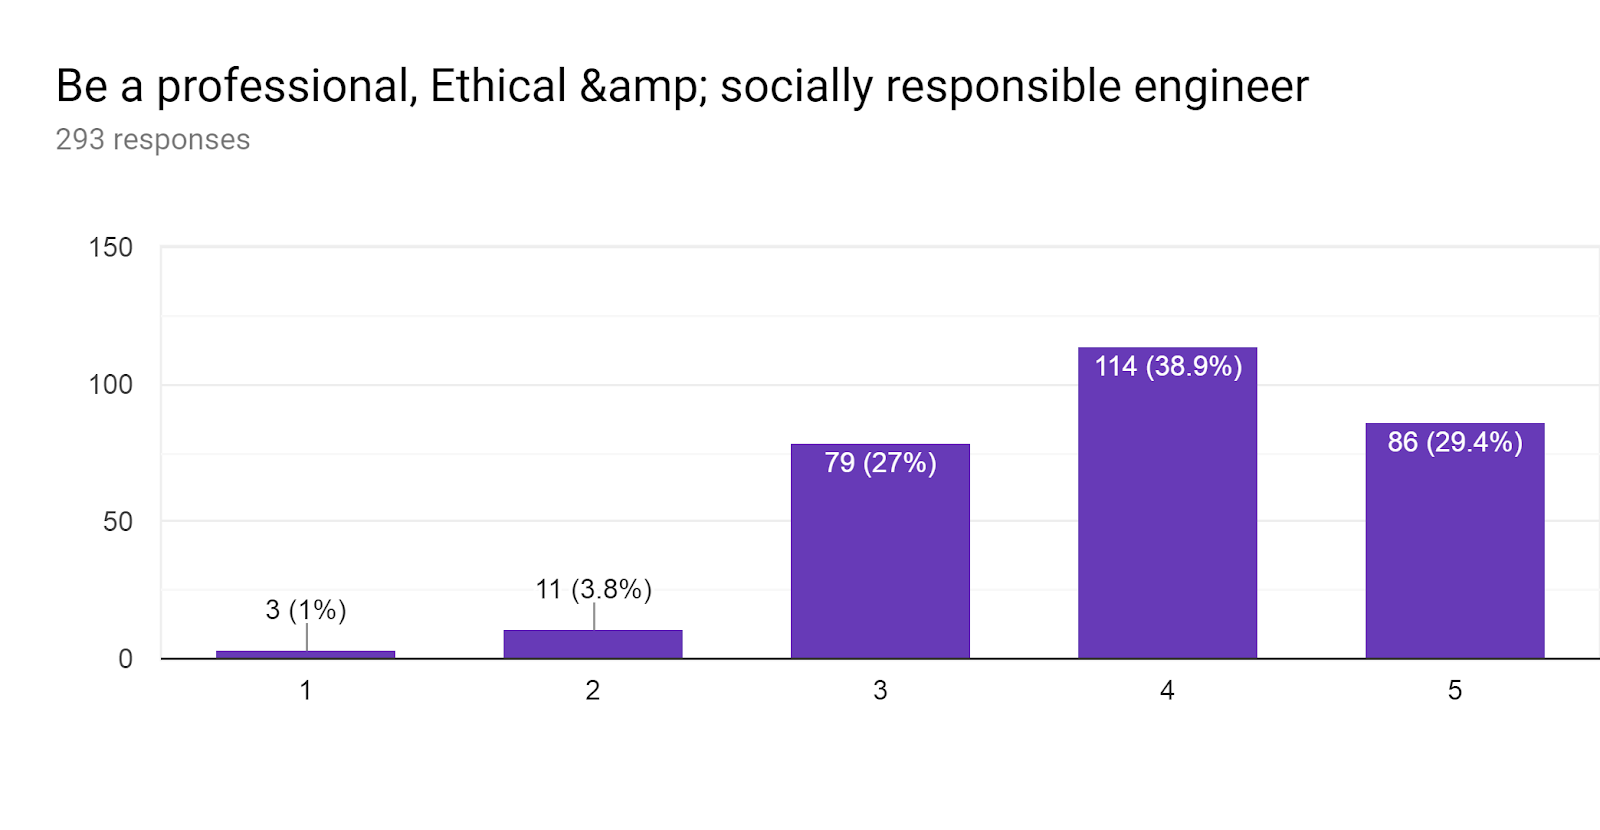 Forms response chart. Question title: Be a professional, Ethical & socially responsible engineer. Number of responses: 293 responses.